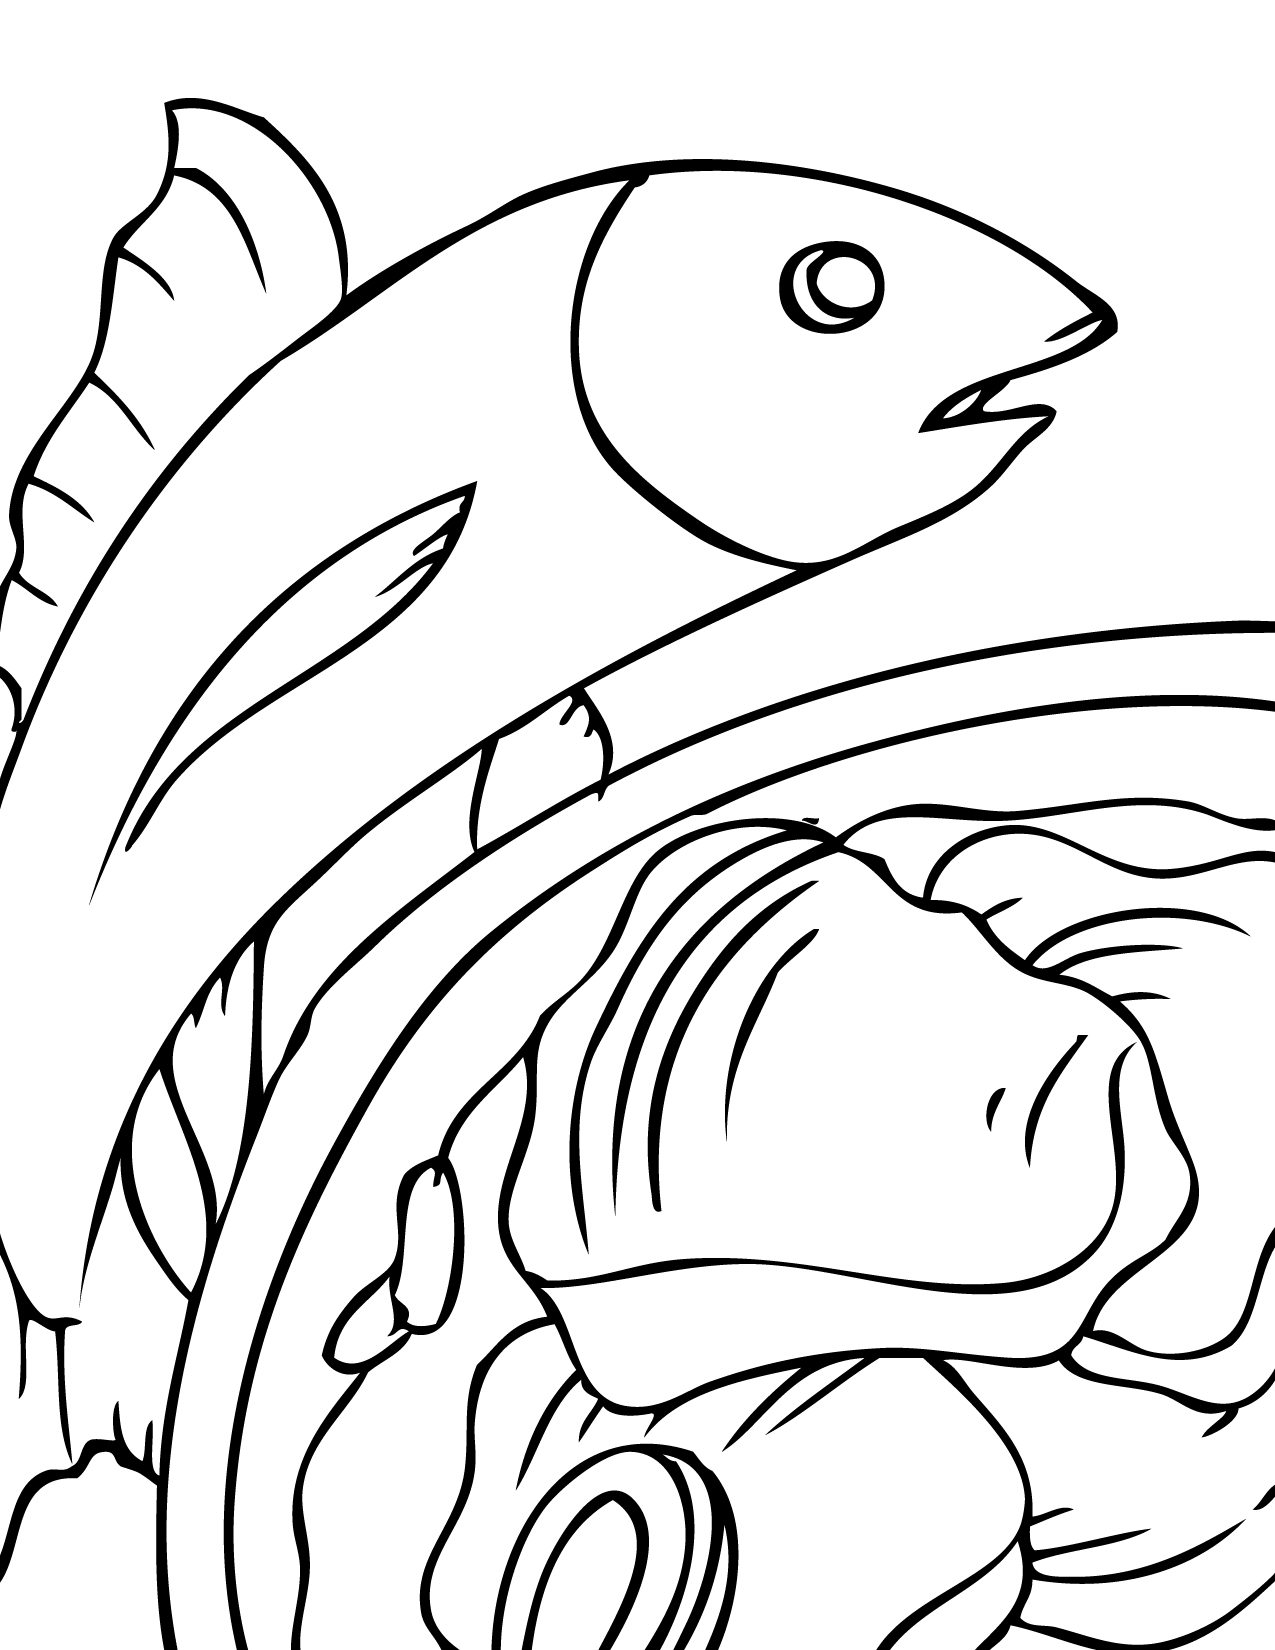 seafood coloring pages - photo#8